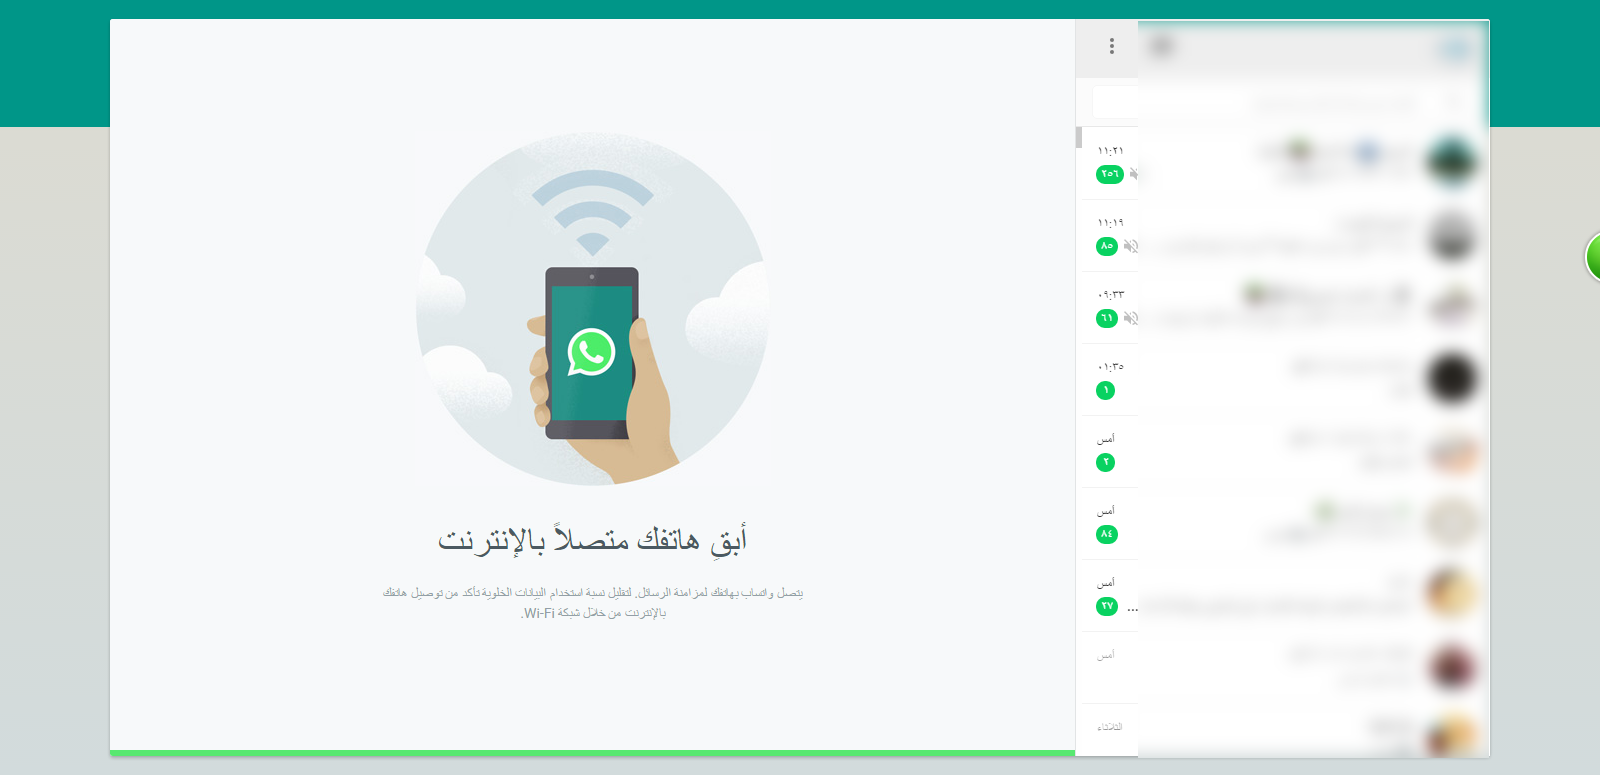 whatsapp web بالصور